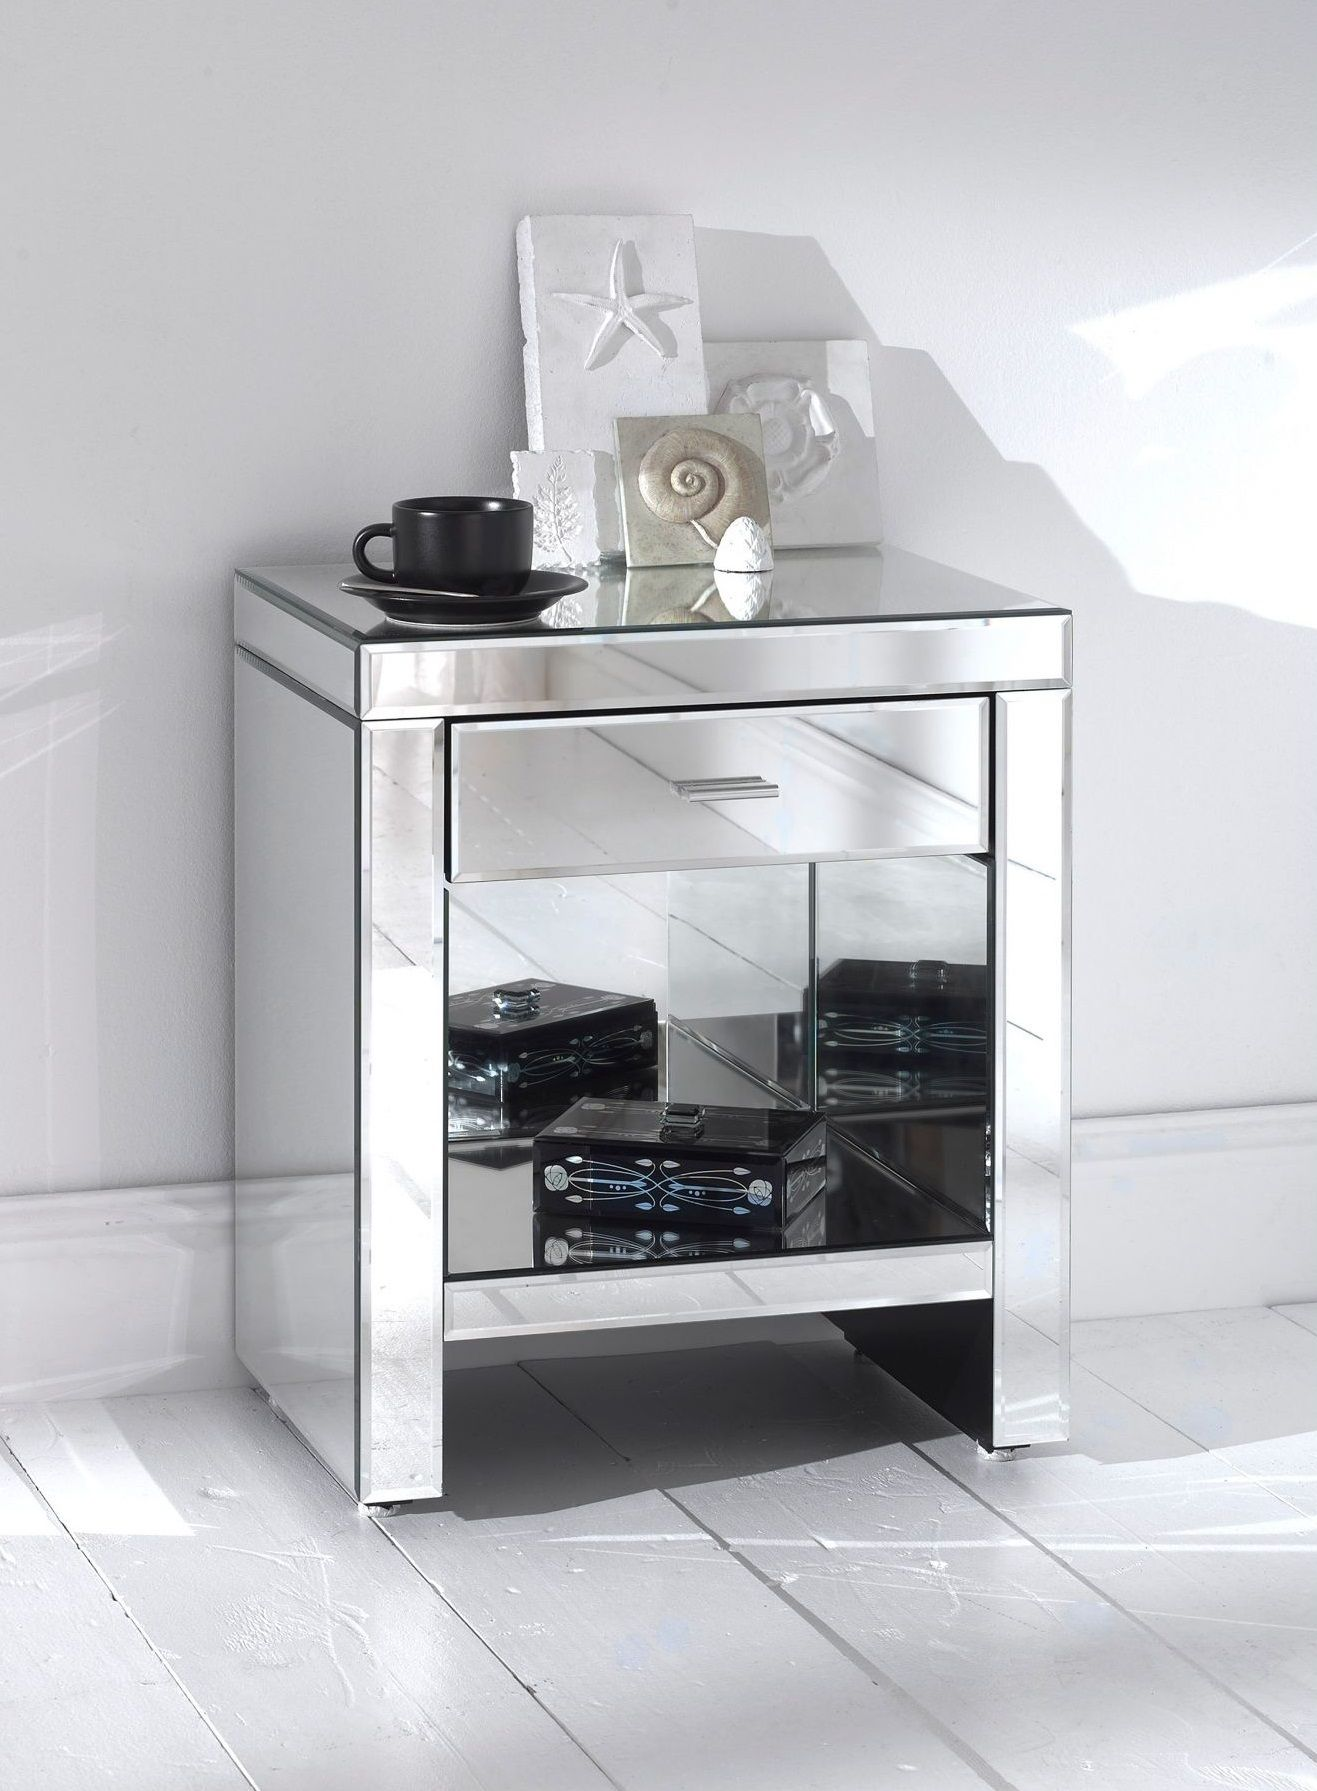 Mirrored Bedside Table With Drawers: Furniture, Small Square Venetian Mirrored Bedside Table